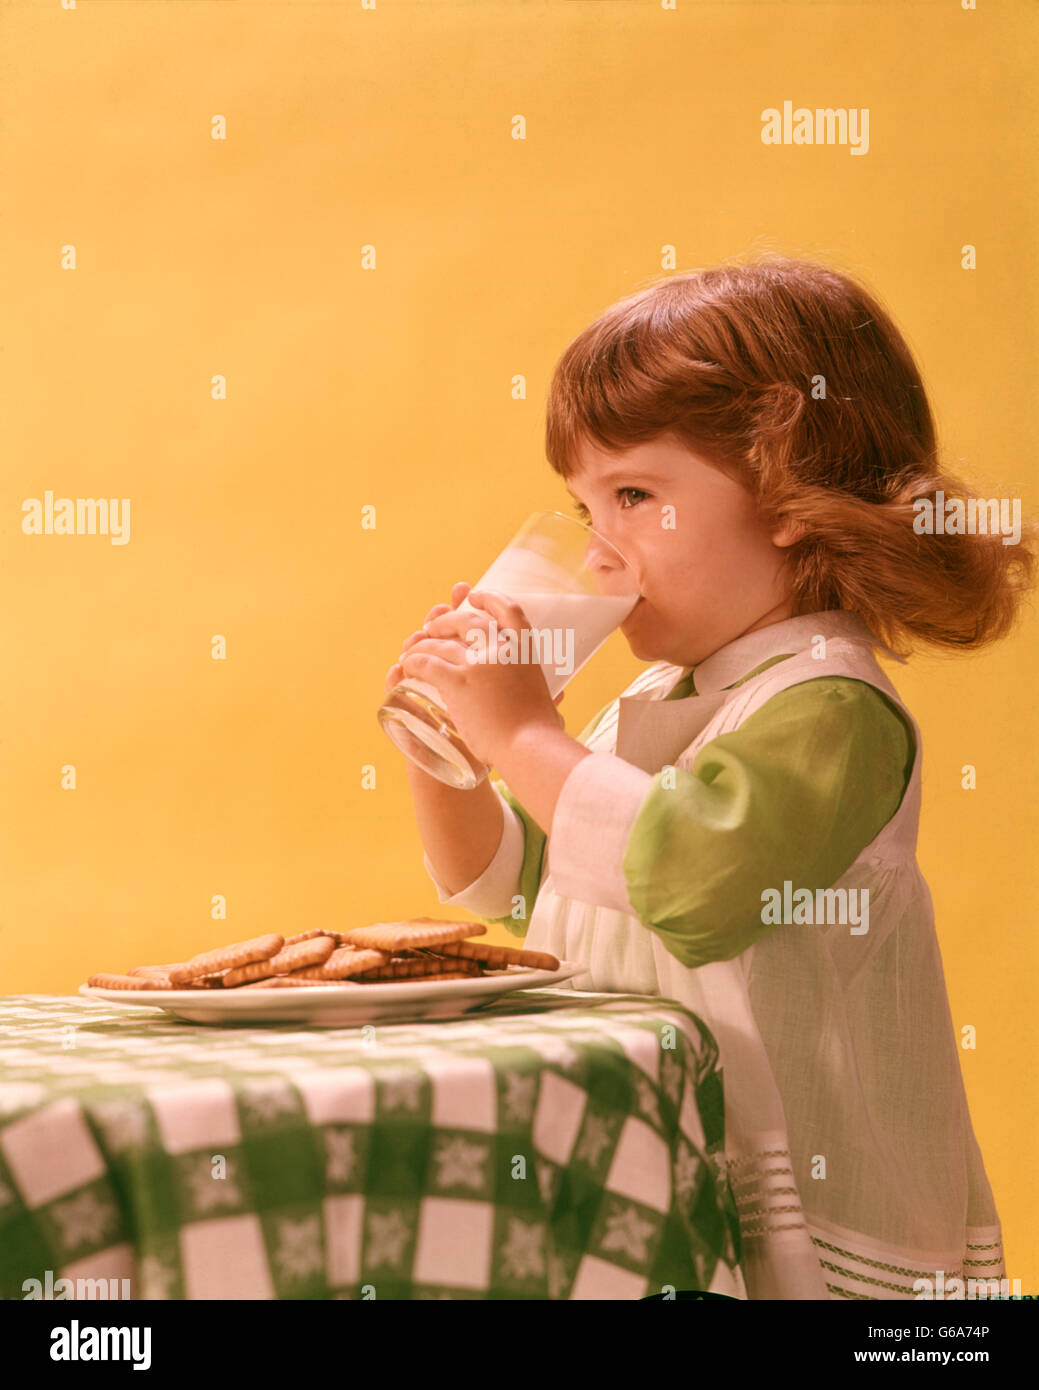 1970s 1960s GIRL DRINKING  GLASS OF MILK COOKIES ON TABLE - Stock Image